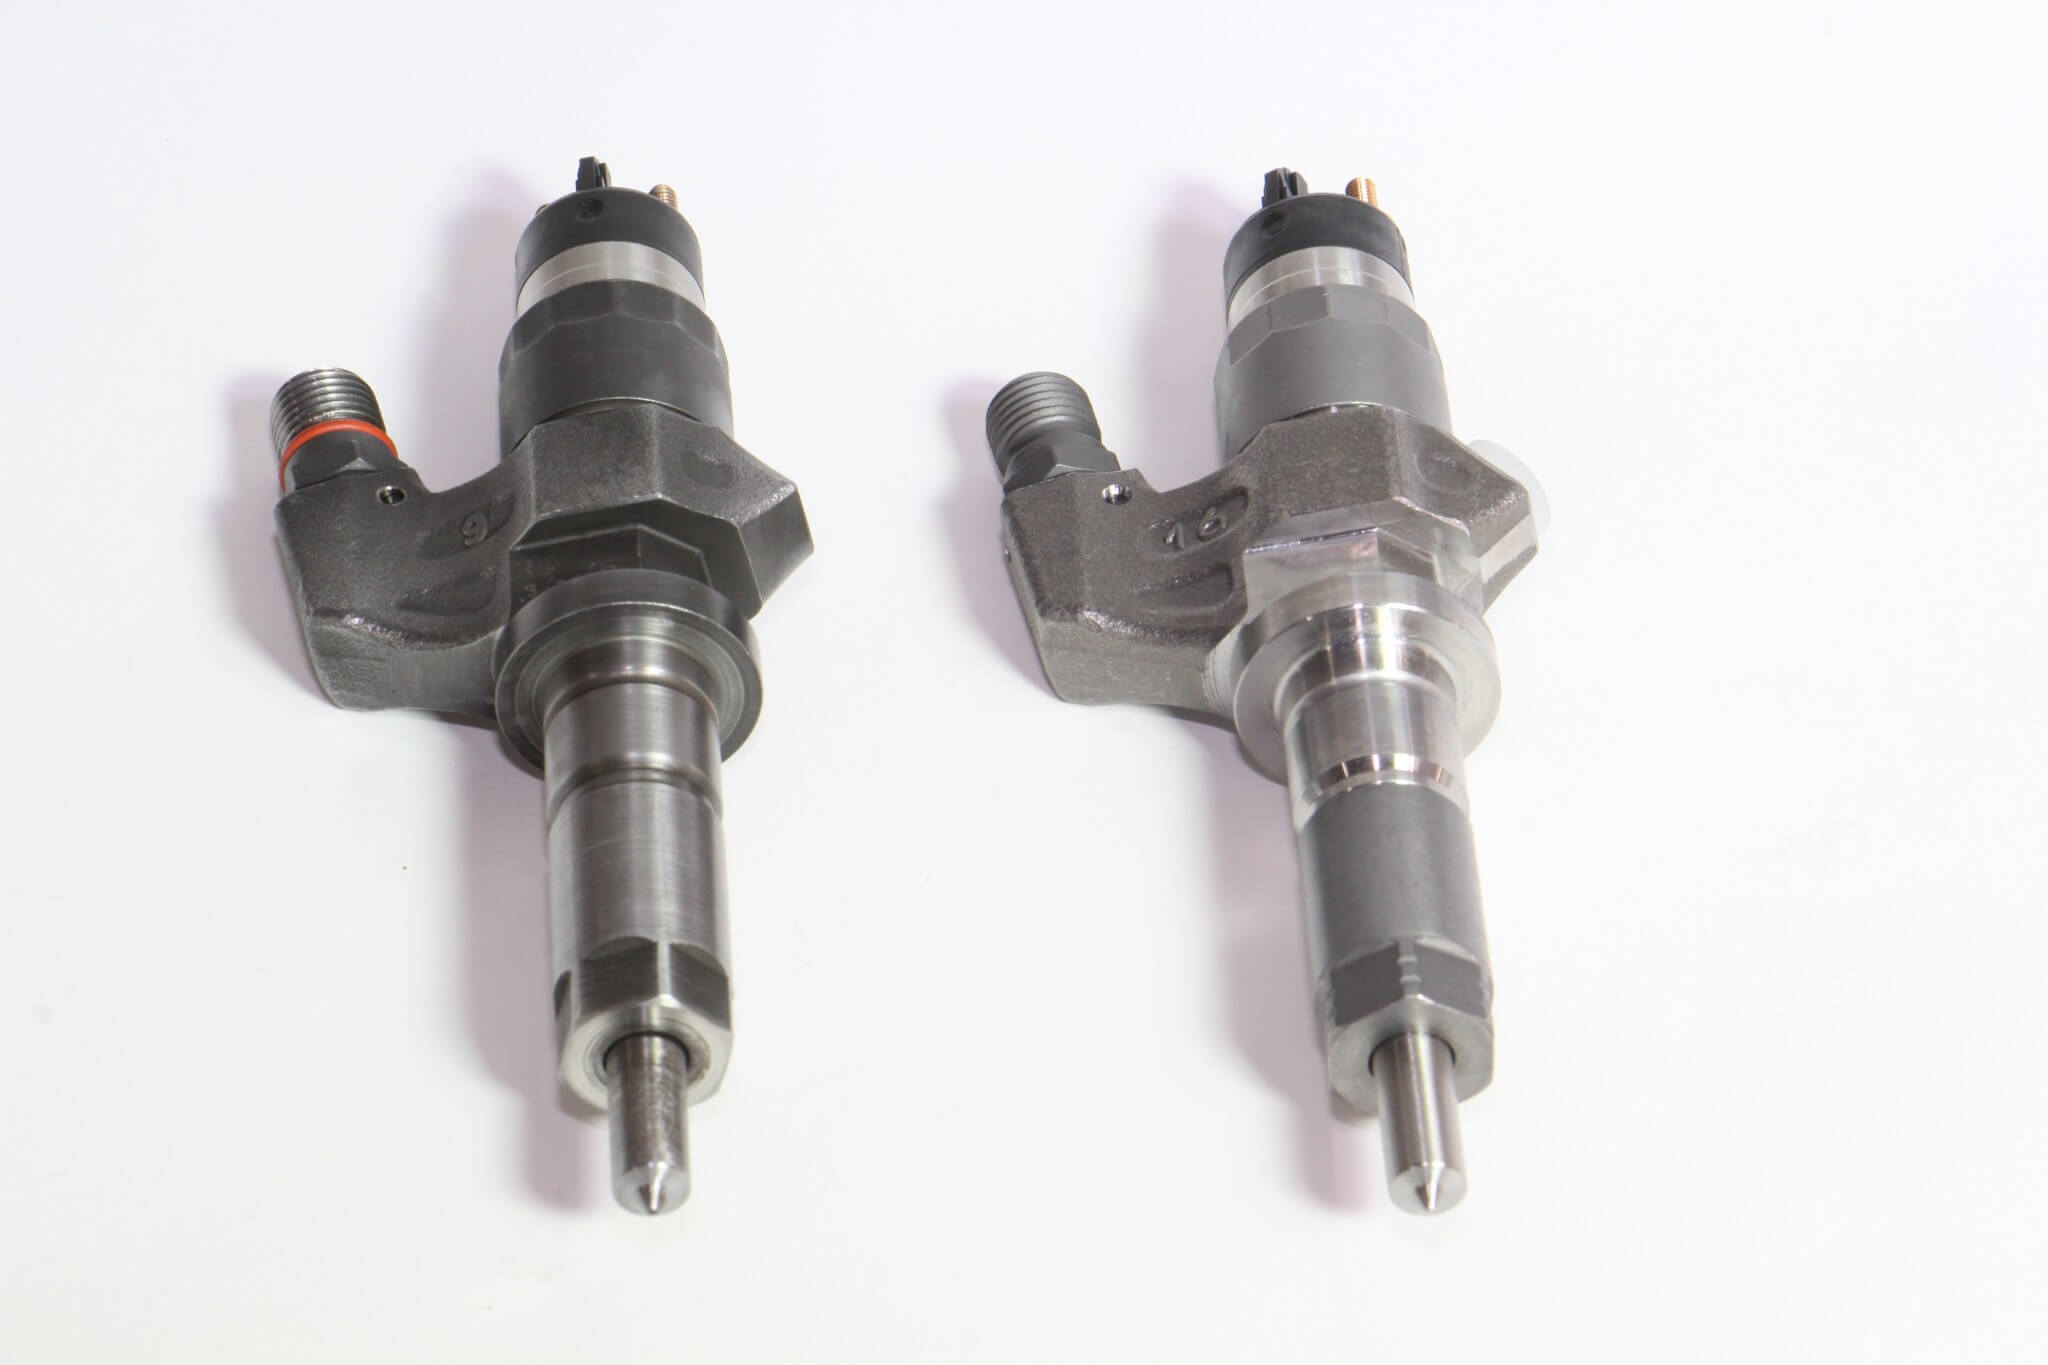 12. This image shows the old injector (left) and new Bosch injector (right). Quality is not always visible at first glance, but it's seen in engine performance right away. Don't skimp here; all replacement injectors are not the same, as this owner found out the first time around.